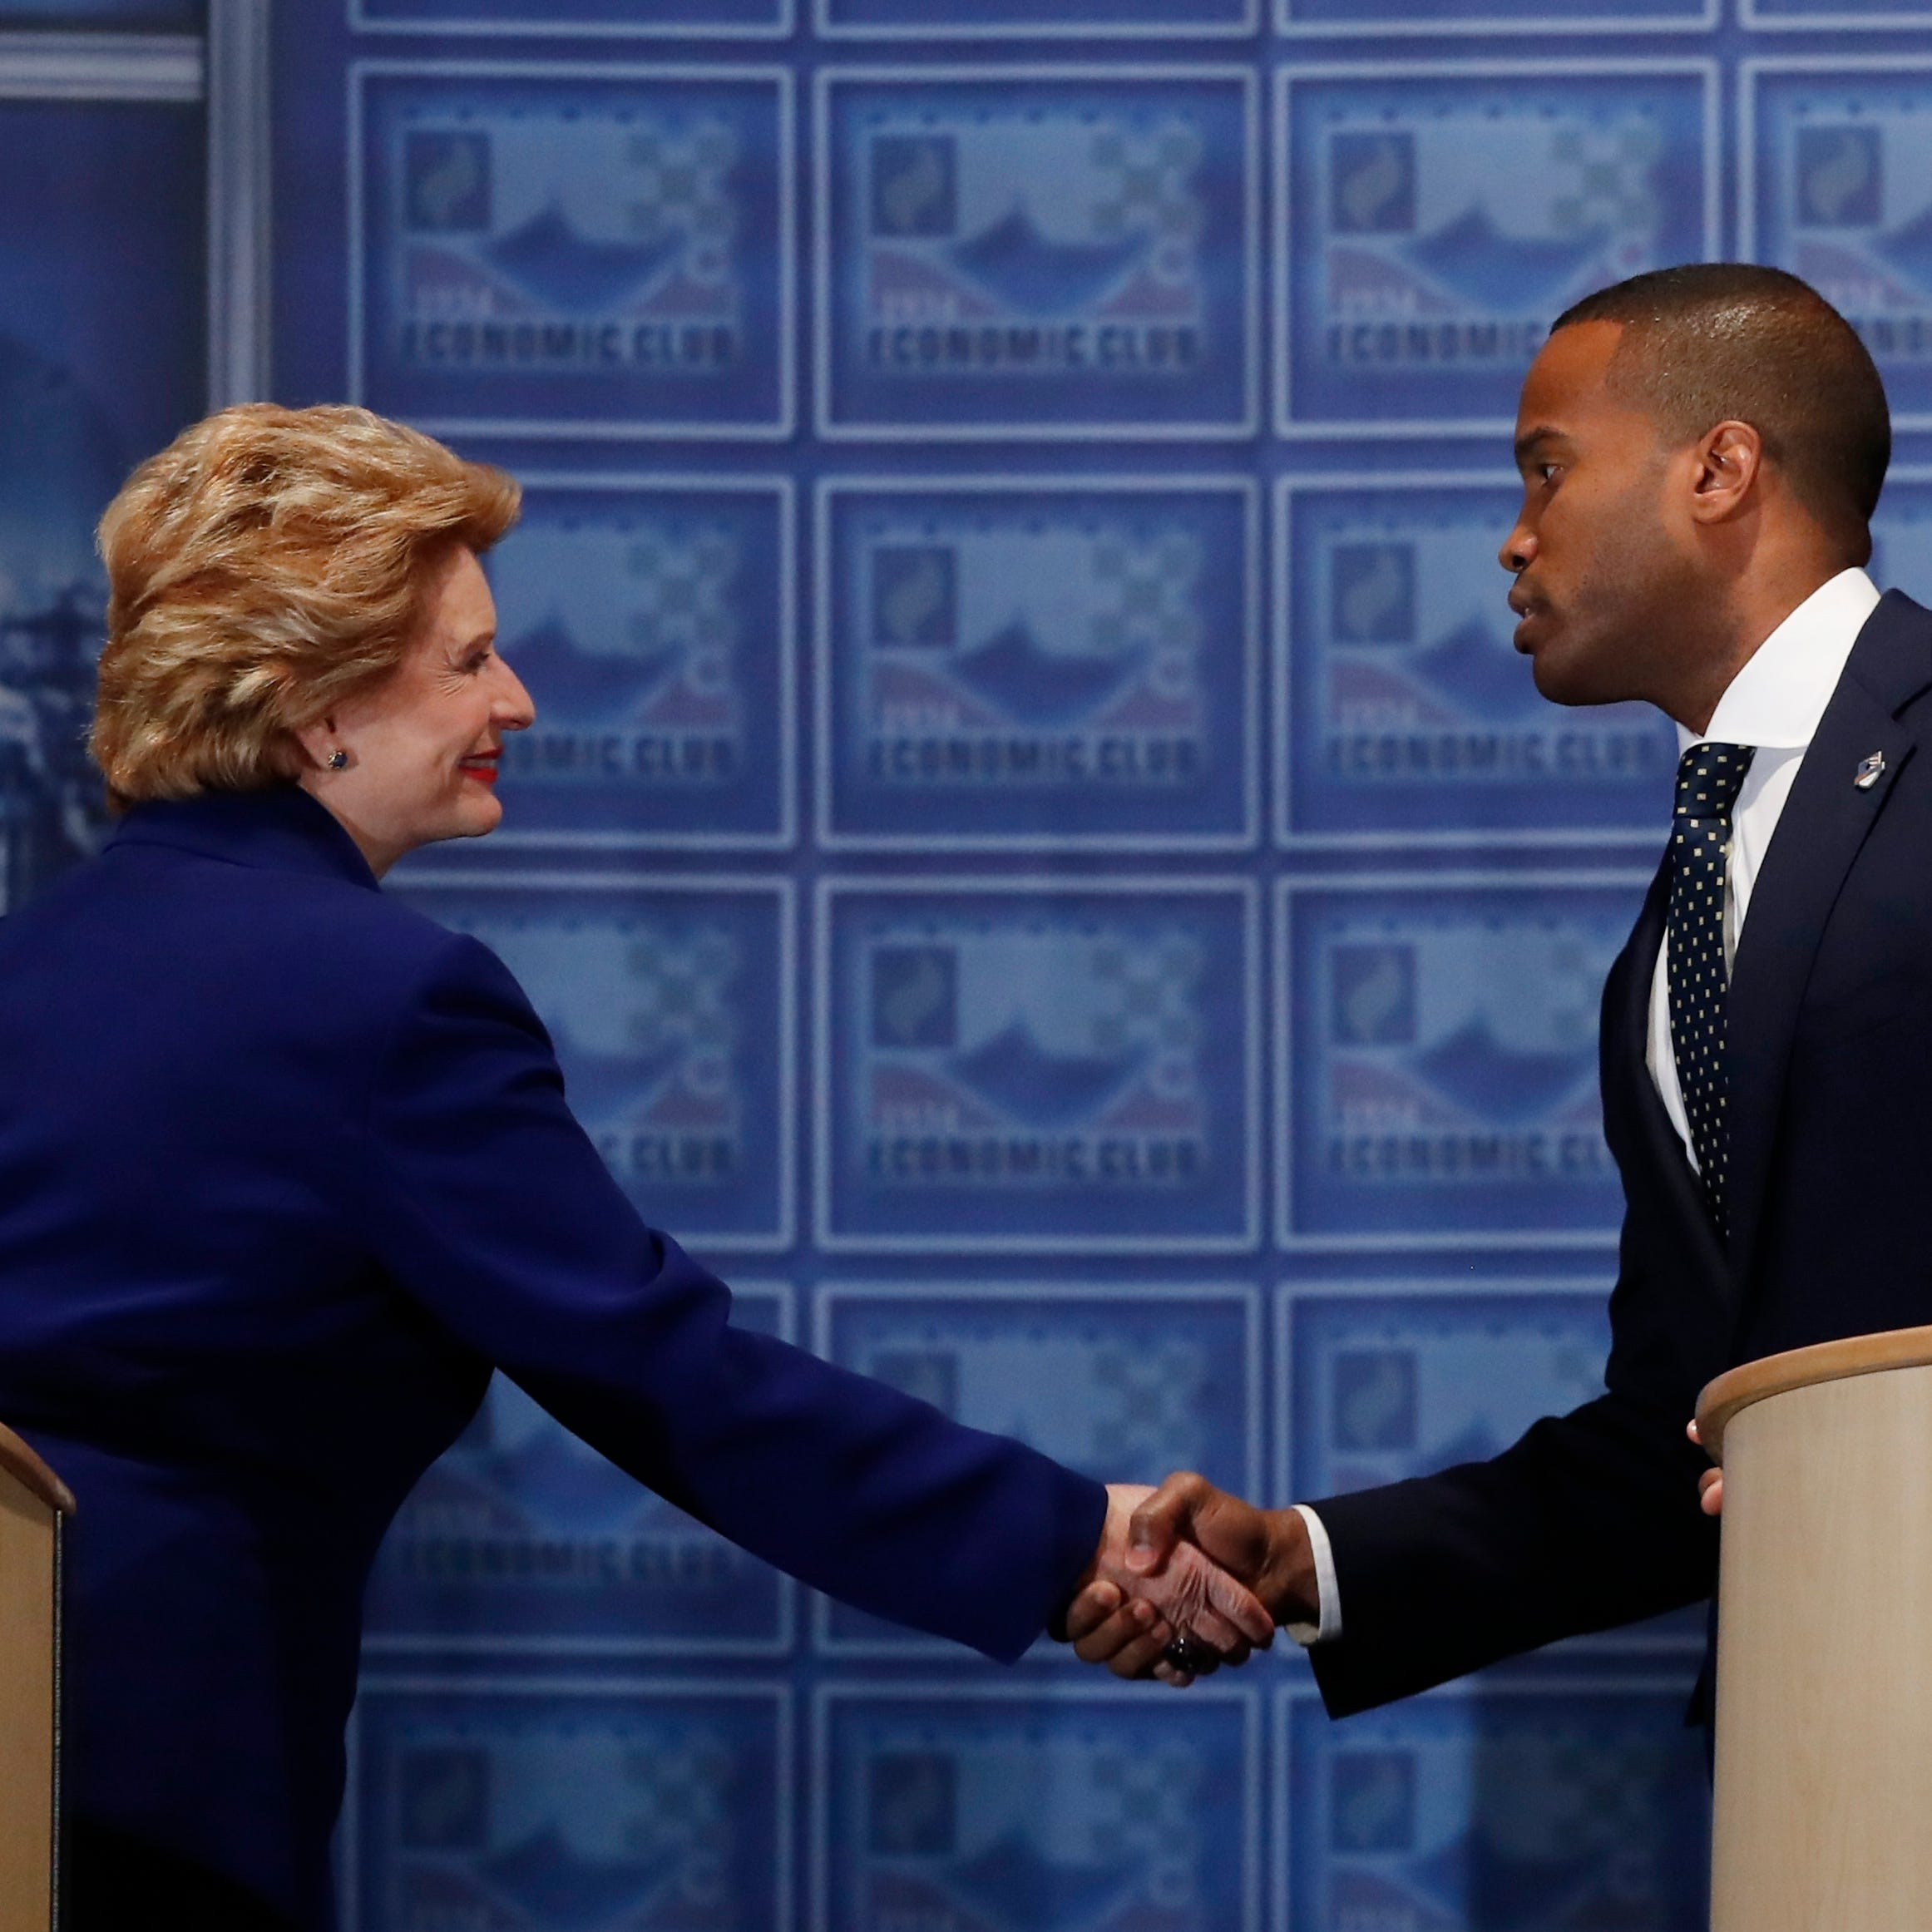 Stabenow, James debate in Detroit: Fact-checking their claims